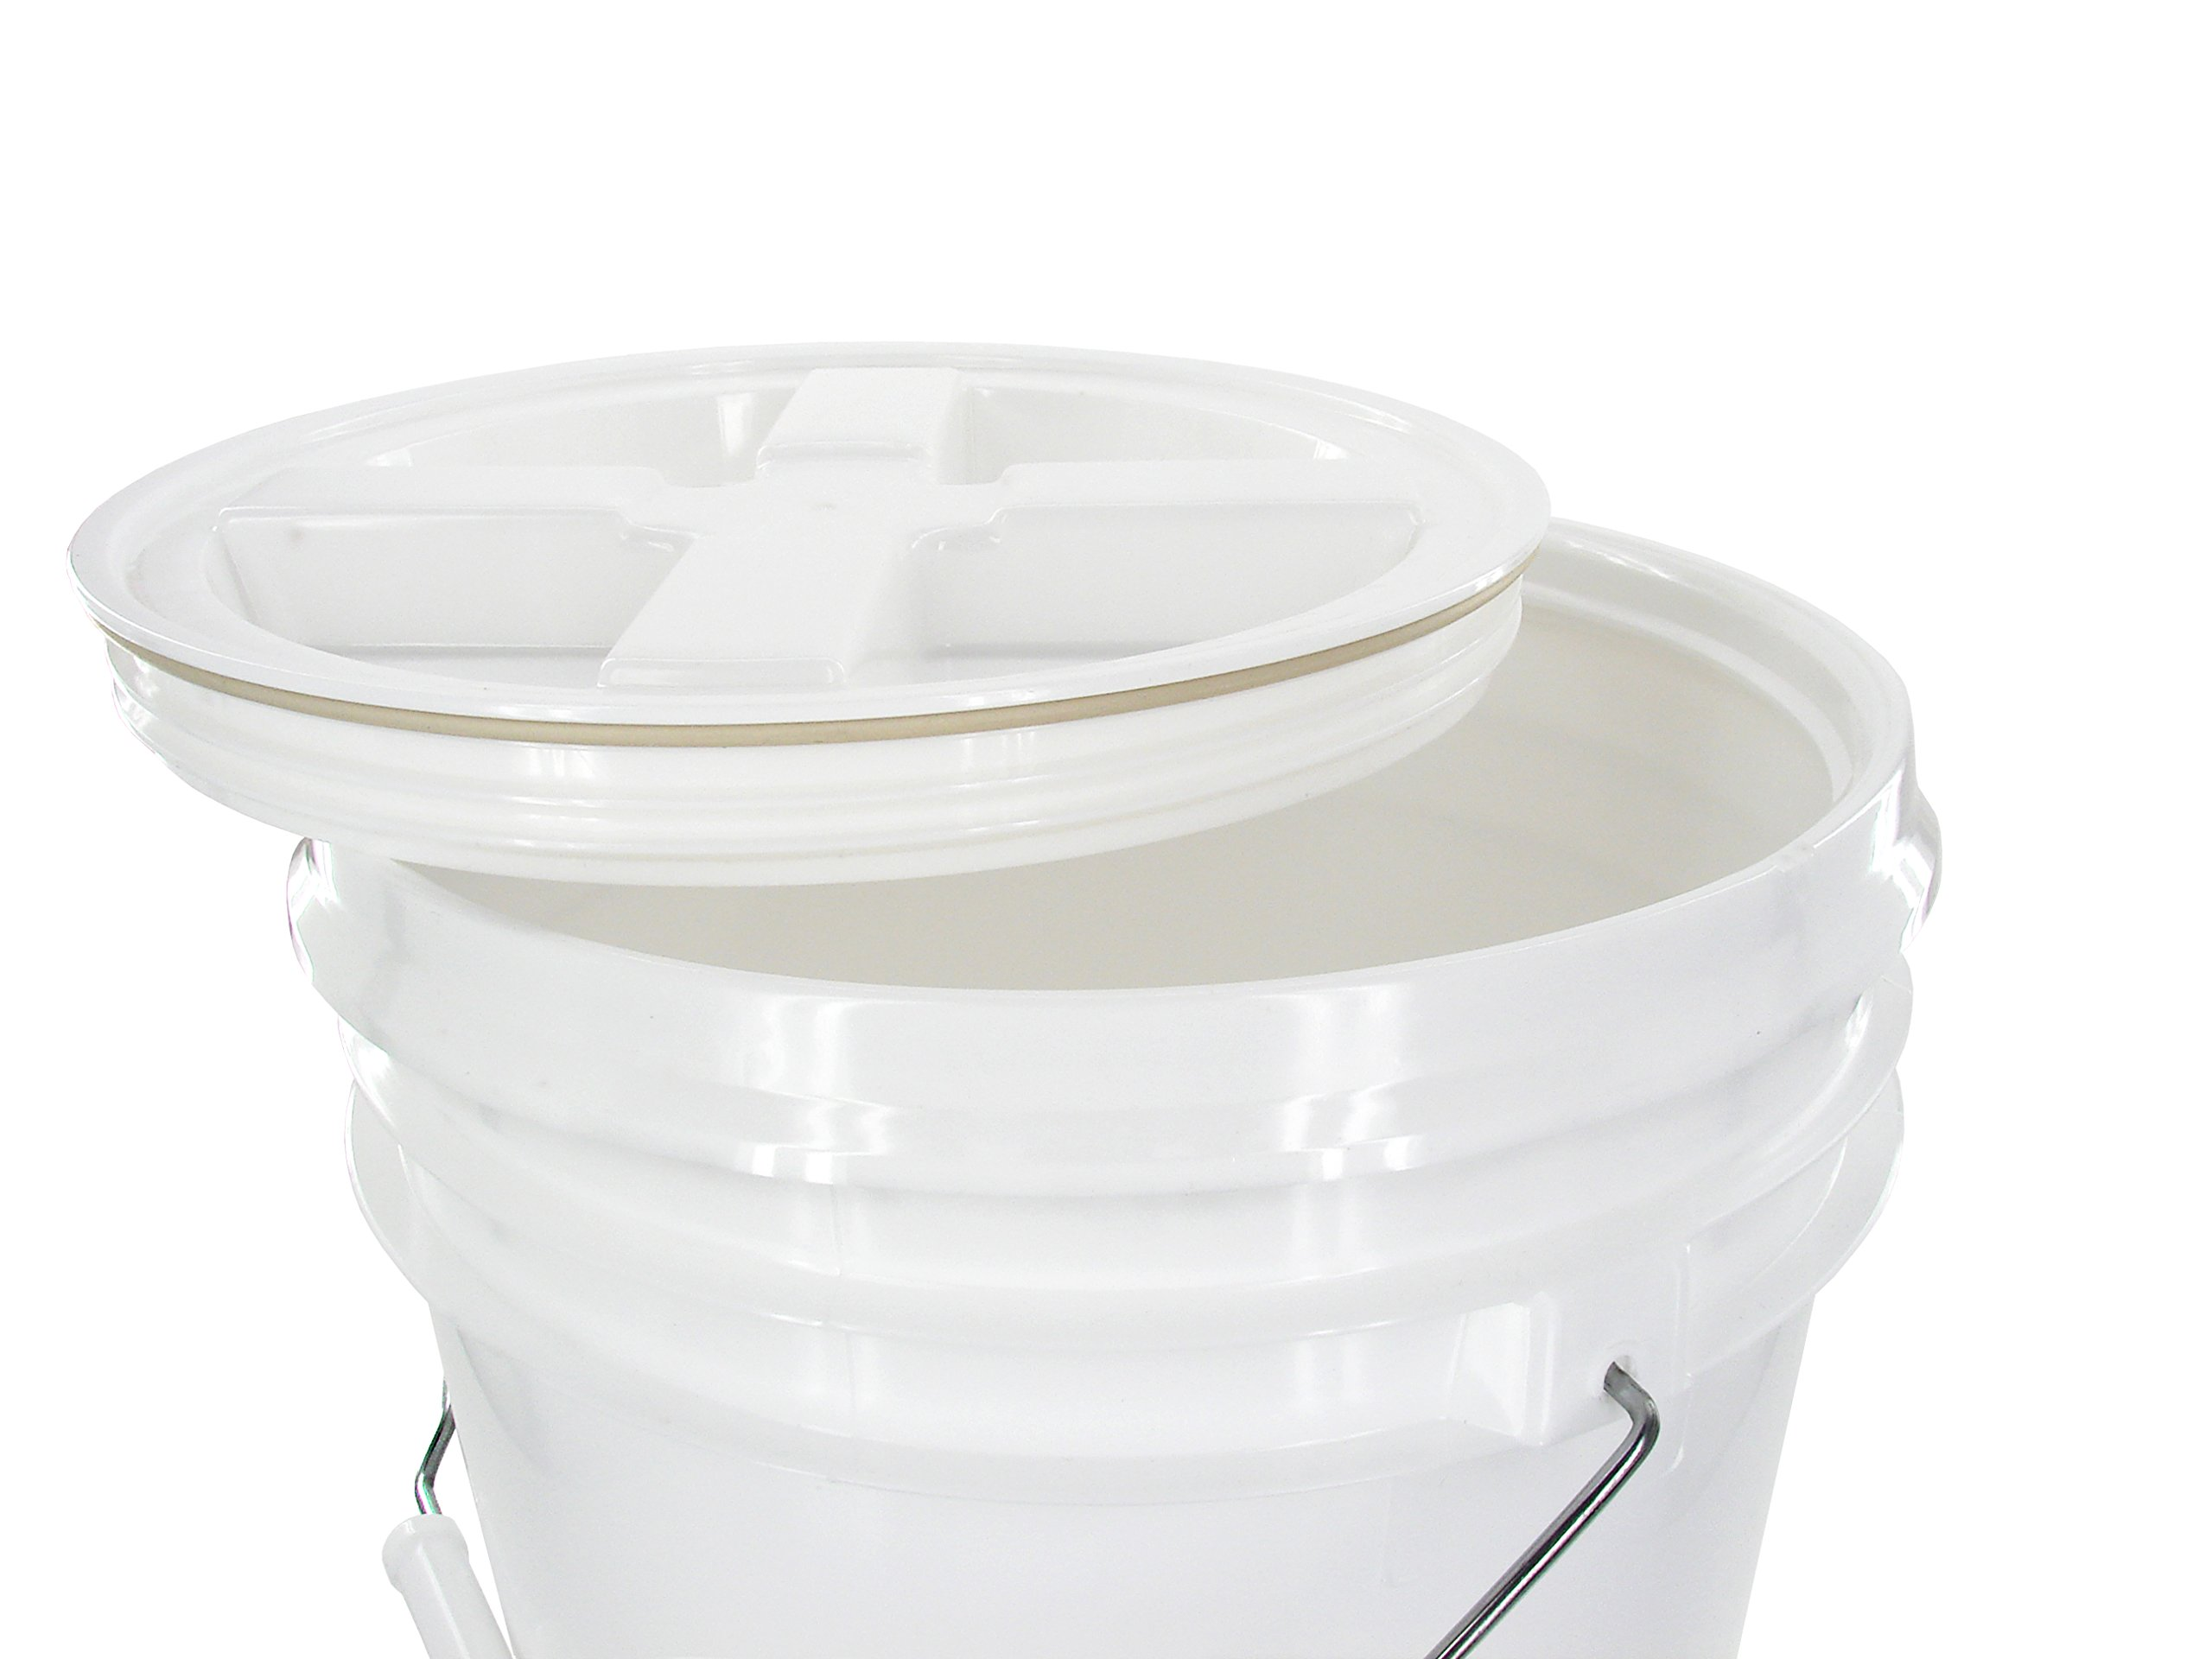 White 2 Gallon Bucket with Gamma Seal Lid (20) by API Kirk (Image #2)